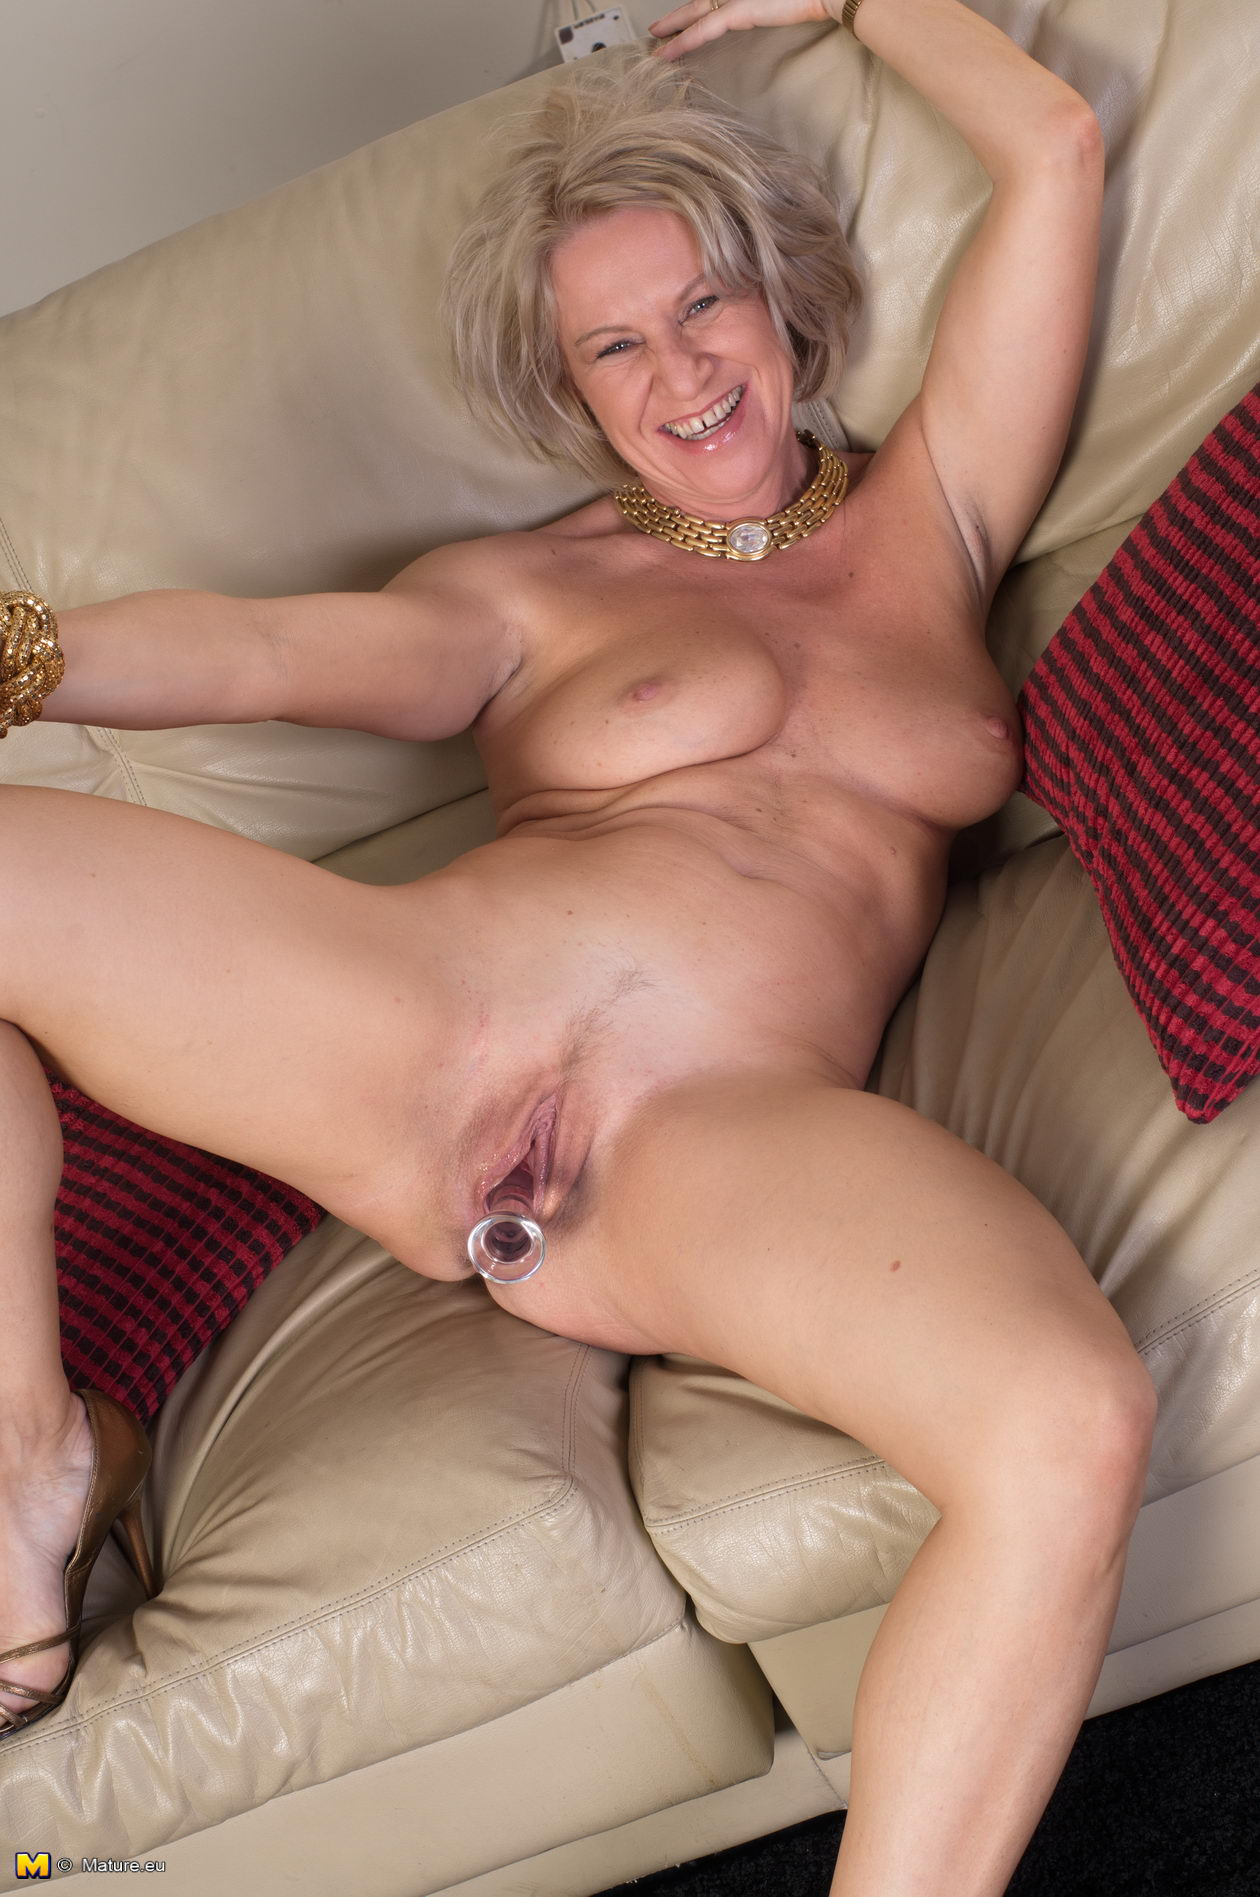 Older nude women movies